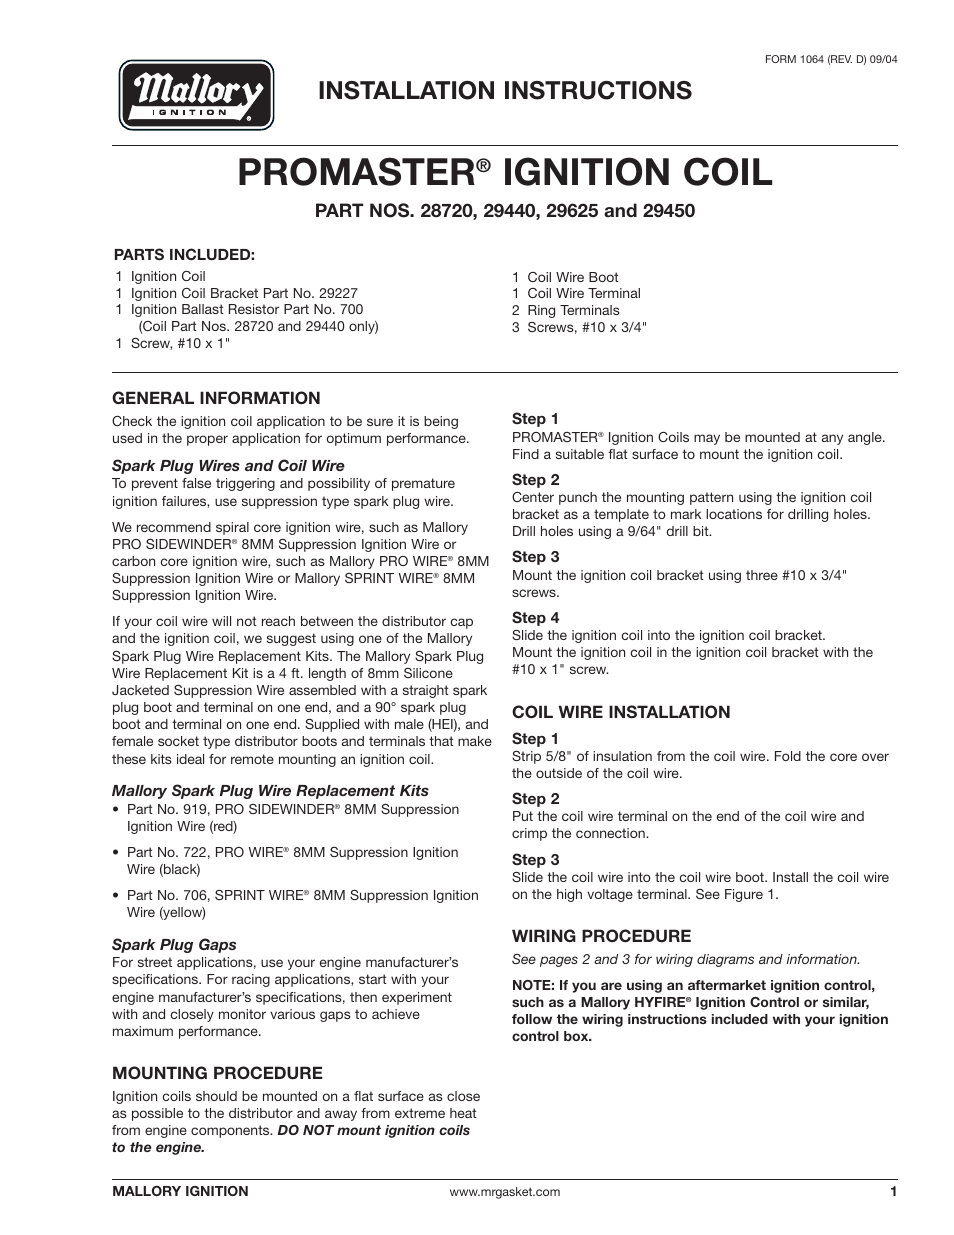 mallory ignition mallory promaster ignition coil 29440_29450_29625_29450 page1?resize\\\\\\\\\\\\\\\\\\\\\\\=665%2C861 accel points eliminator wiring diagram mallory ignition wiring accel points eliminator wiring diagram at fashall.co